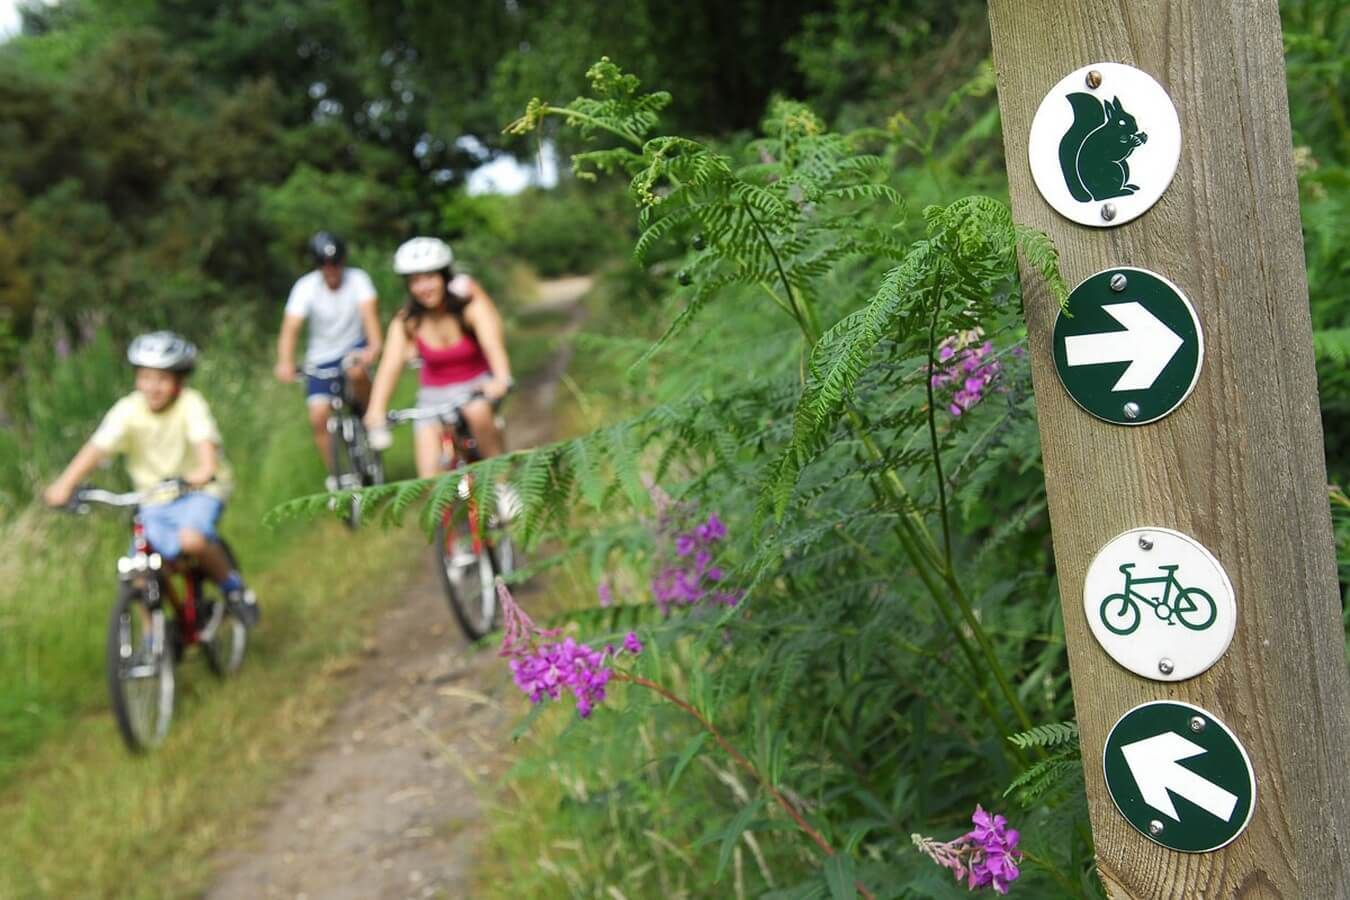 Cyclists on Cycle trails and routes at Kelling Heath.